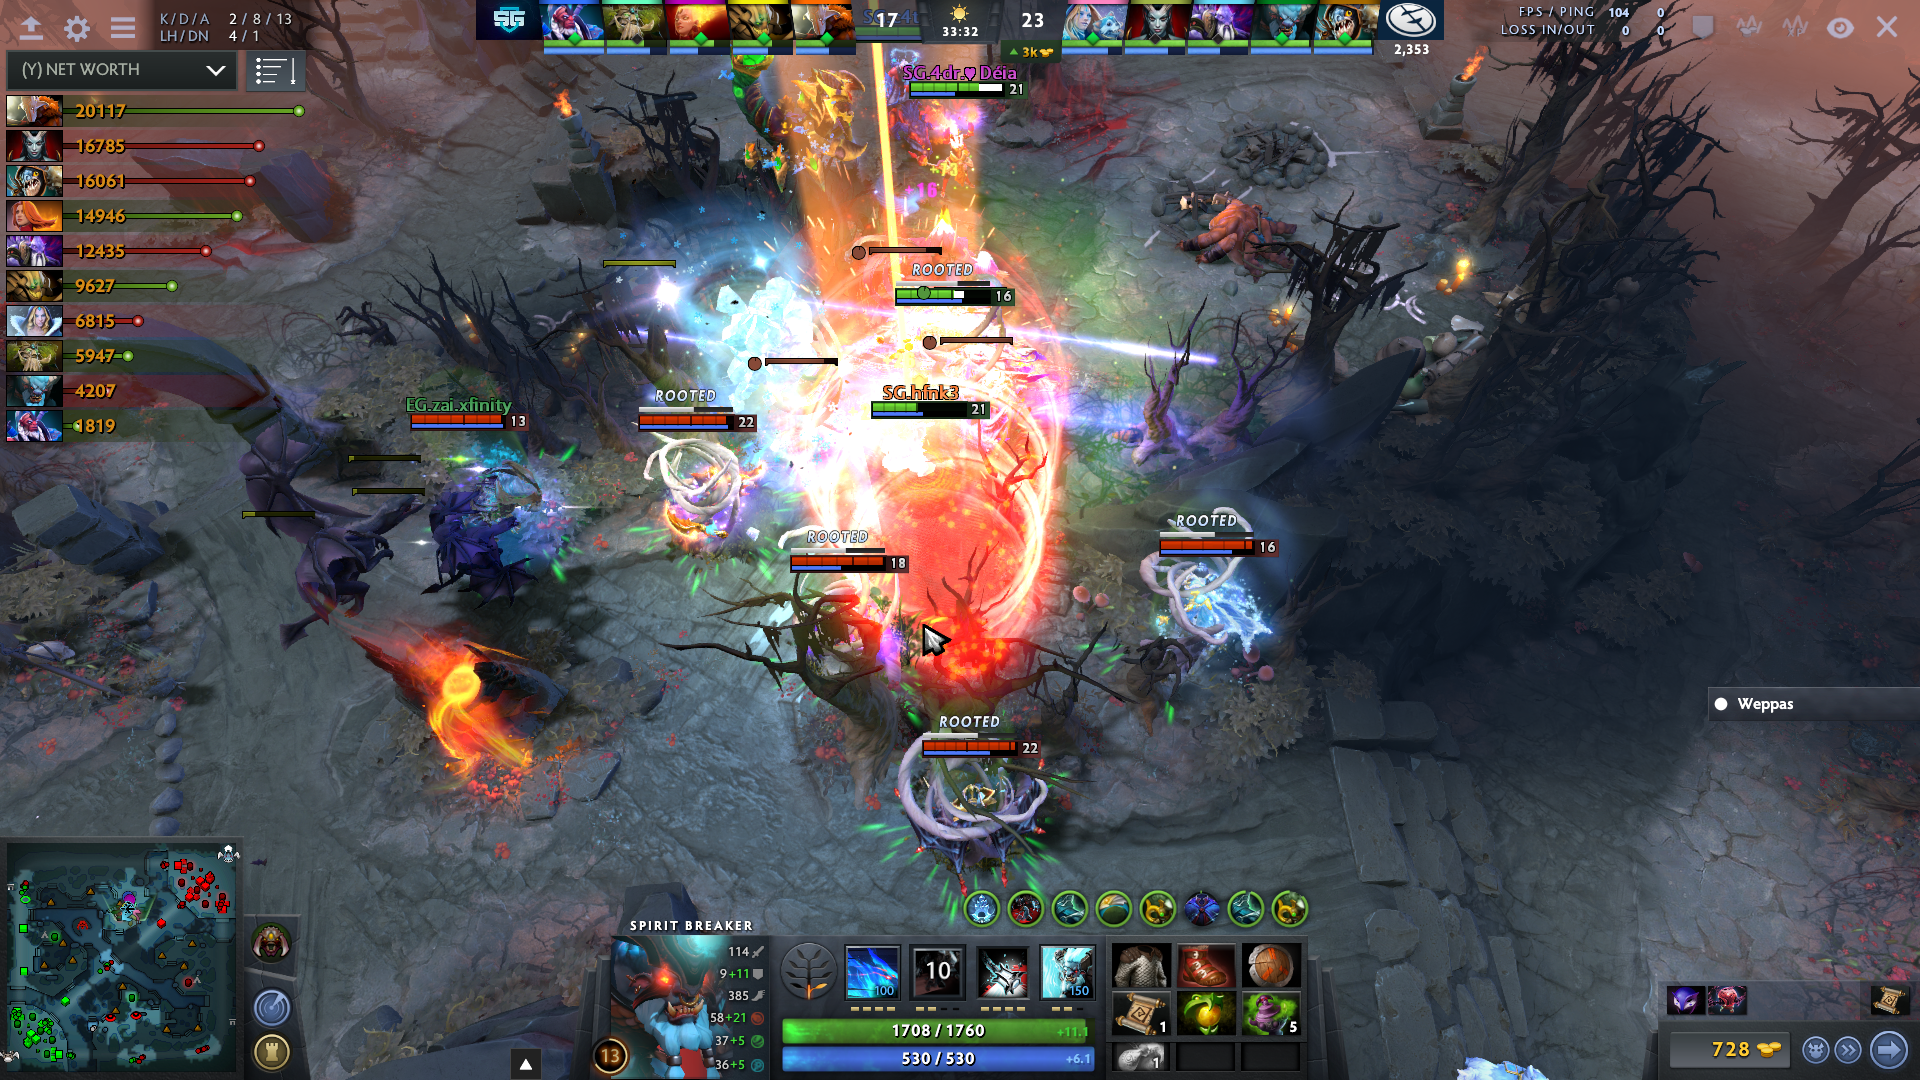 Typical Dota game